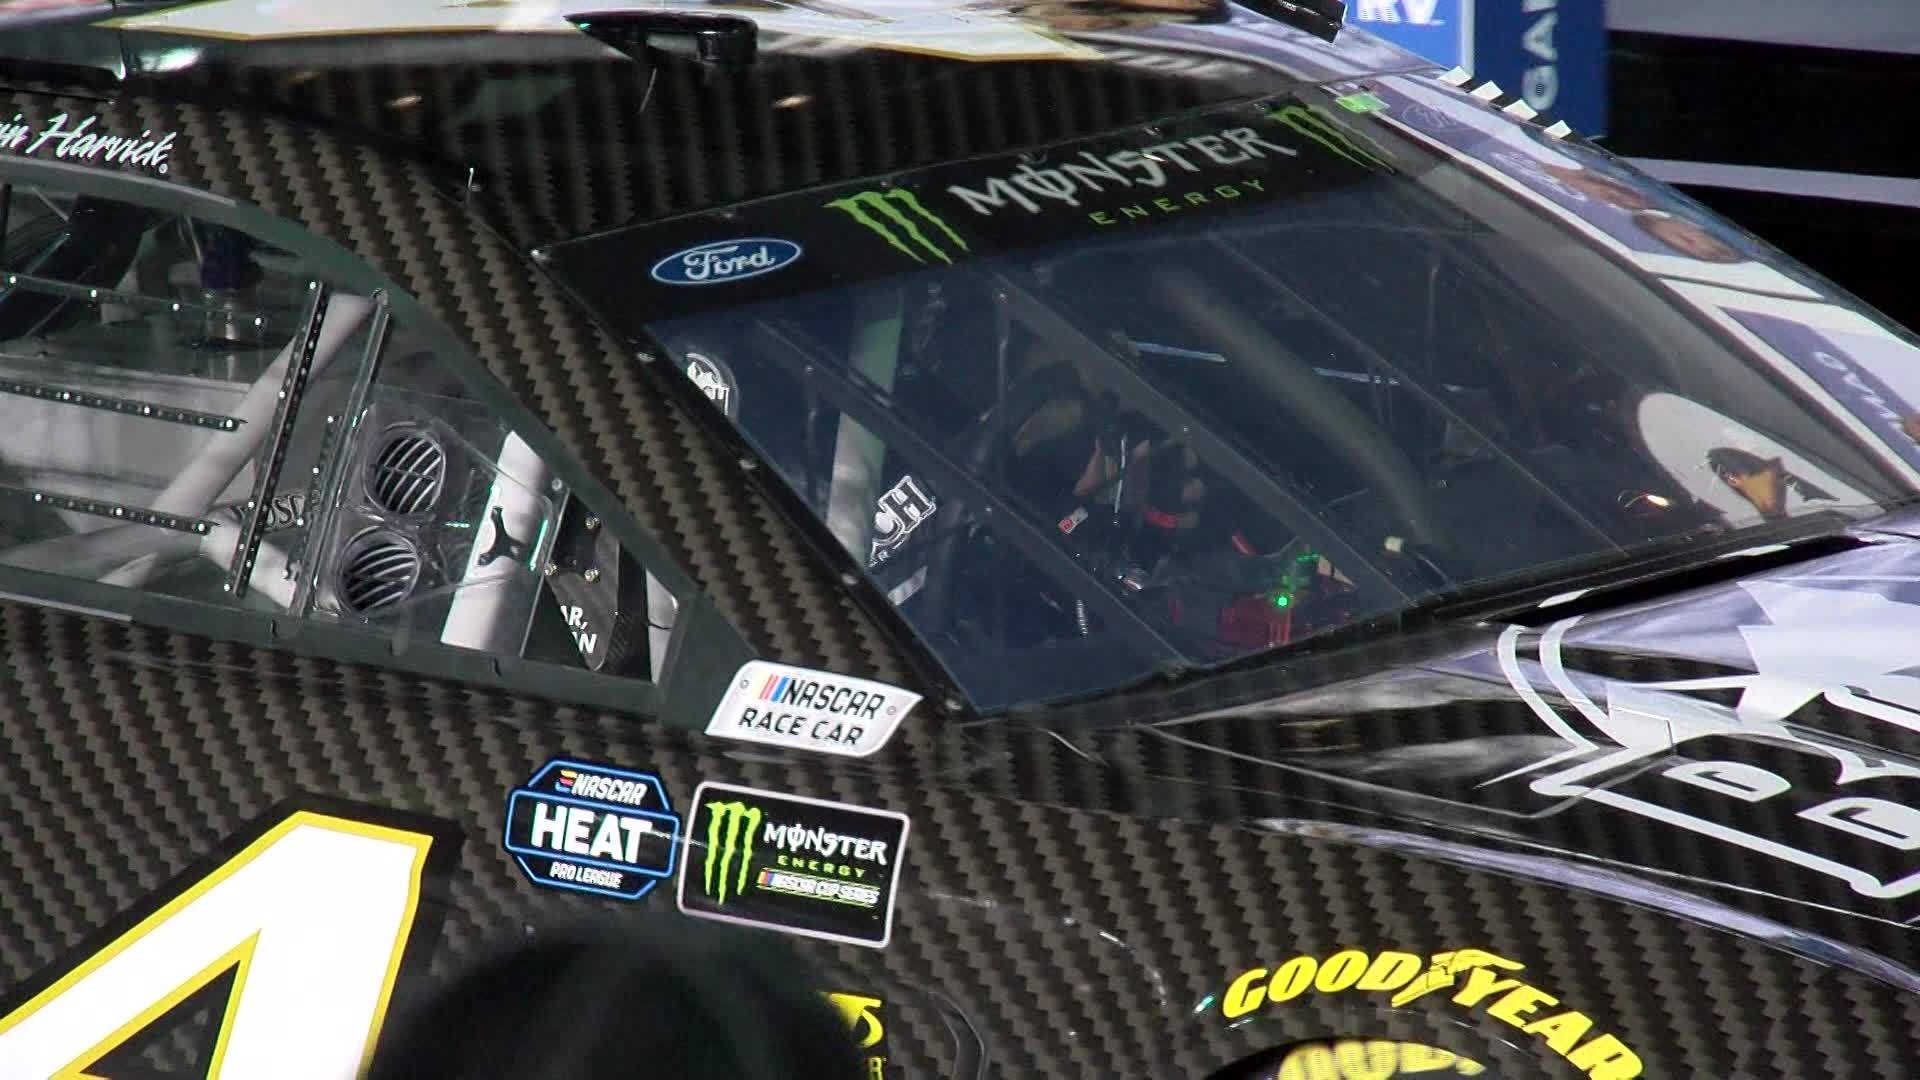 Kevin_Harvick_plans_to_cash_in_on_his_qu_12_20190215210421-846652698